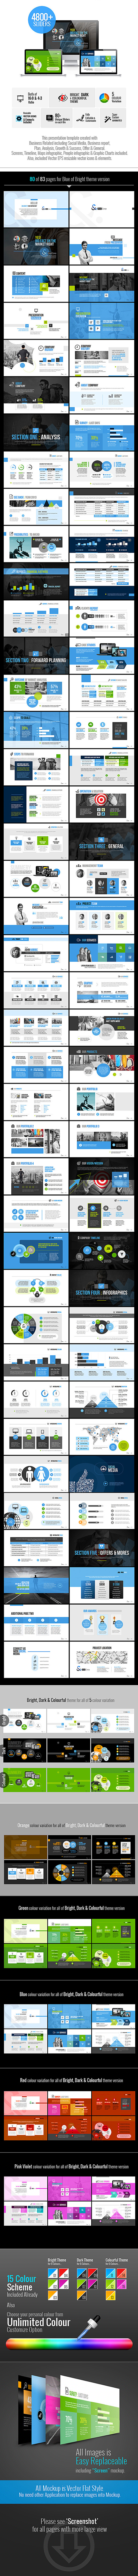 Graphicriver-Premium-Presentation-for-Business-Survey-Analysis-Report-Marketing-Plan-Growth-Success-Keynote-Templates_IP